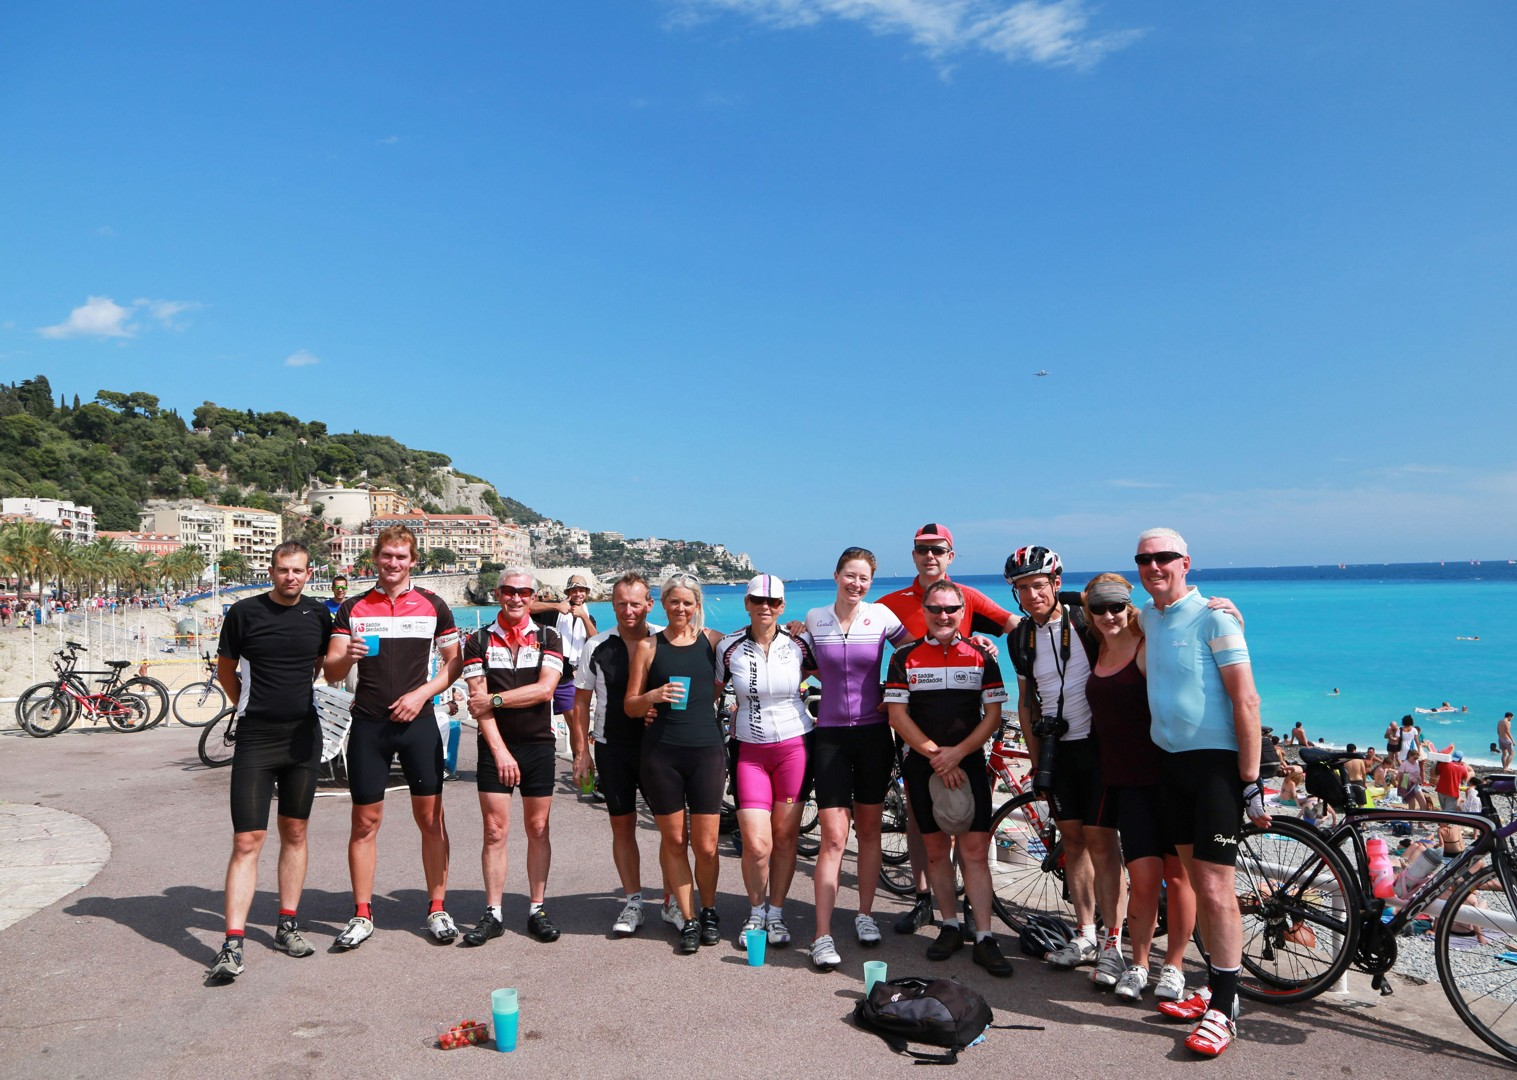 group-cycling-holiday-st-malo-to-nice-challenge.jpg - France - St Malo to Nice Challenge (12 days) - Guided Road Cycling Holiday - Road Cycling